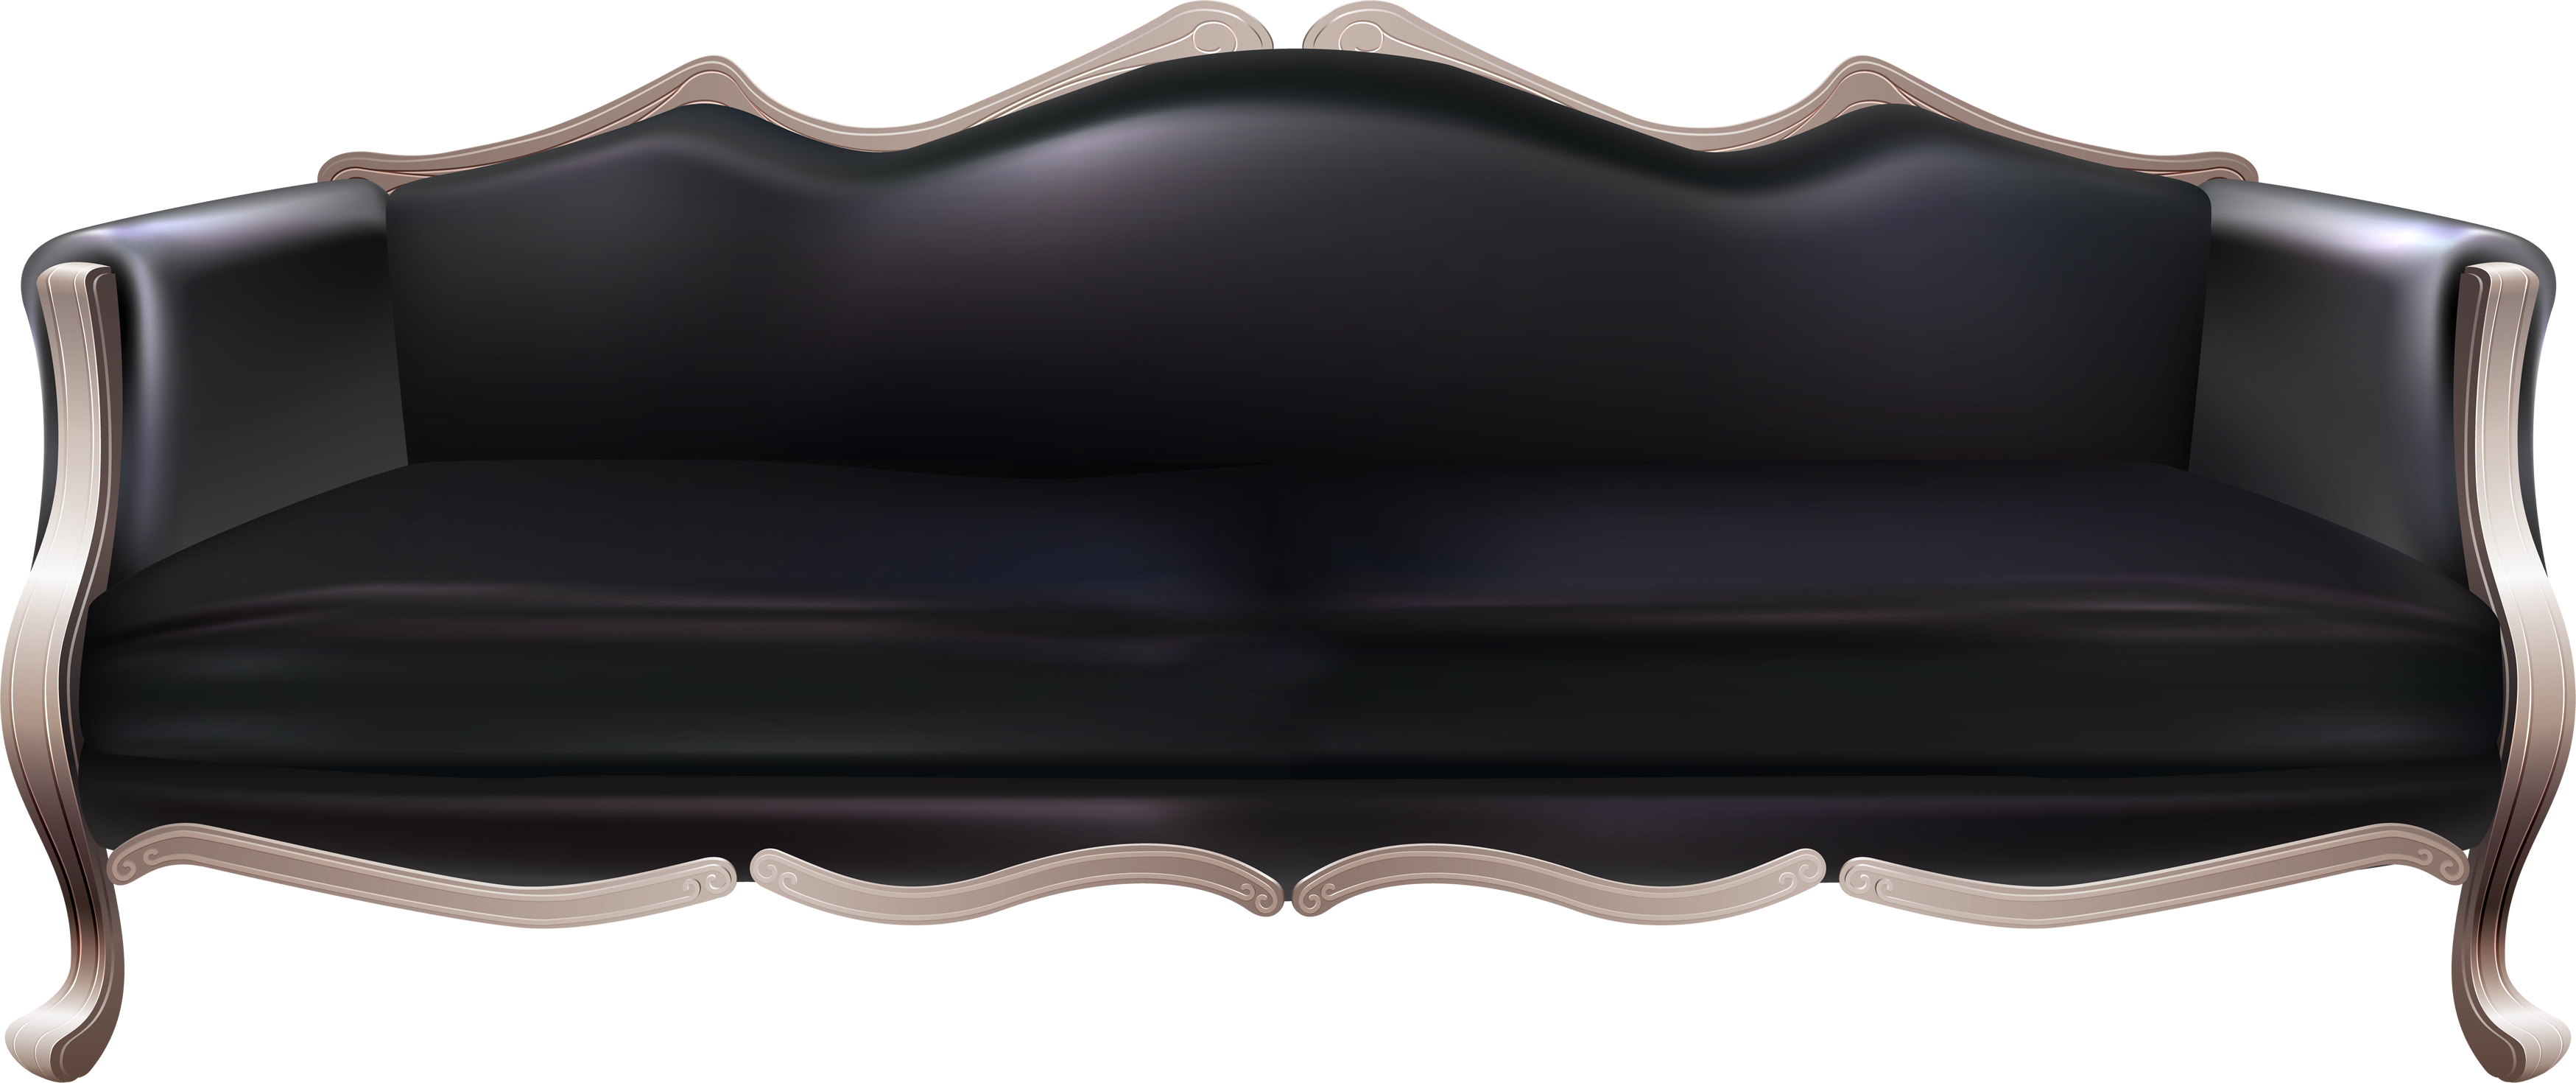 Couch HD PNG - 91465